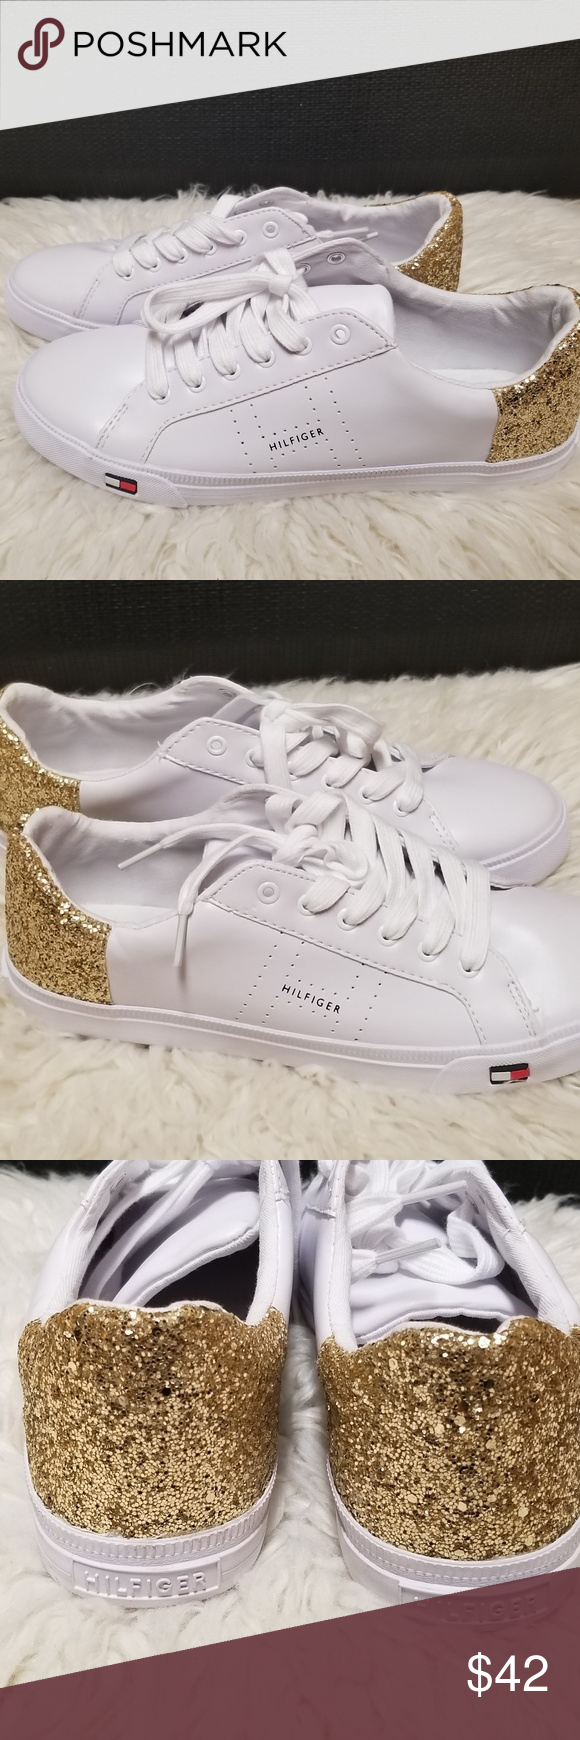 9e4c68850 Tommy Hilfiger Women s Lune Sneaker White Gold Tommy Hilfiger Women s TW Lune  Sneaker White Gold Size 10 Brand new! His a minor scratch (unnoticeable) ...